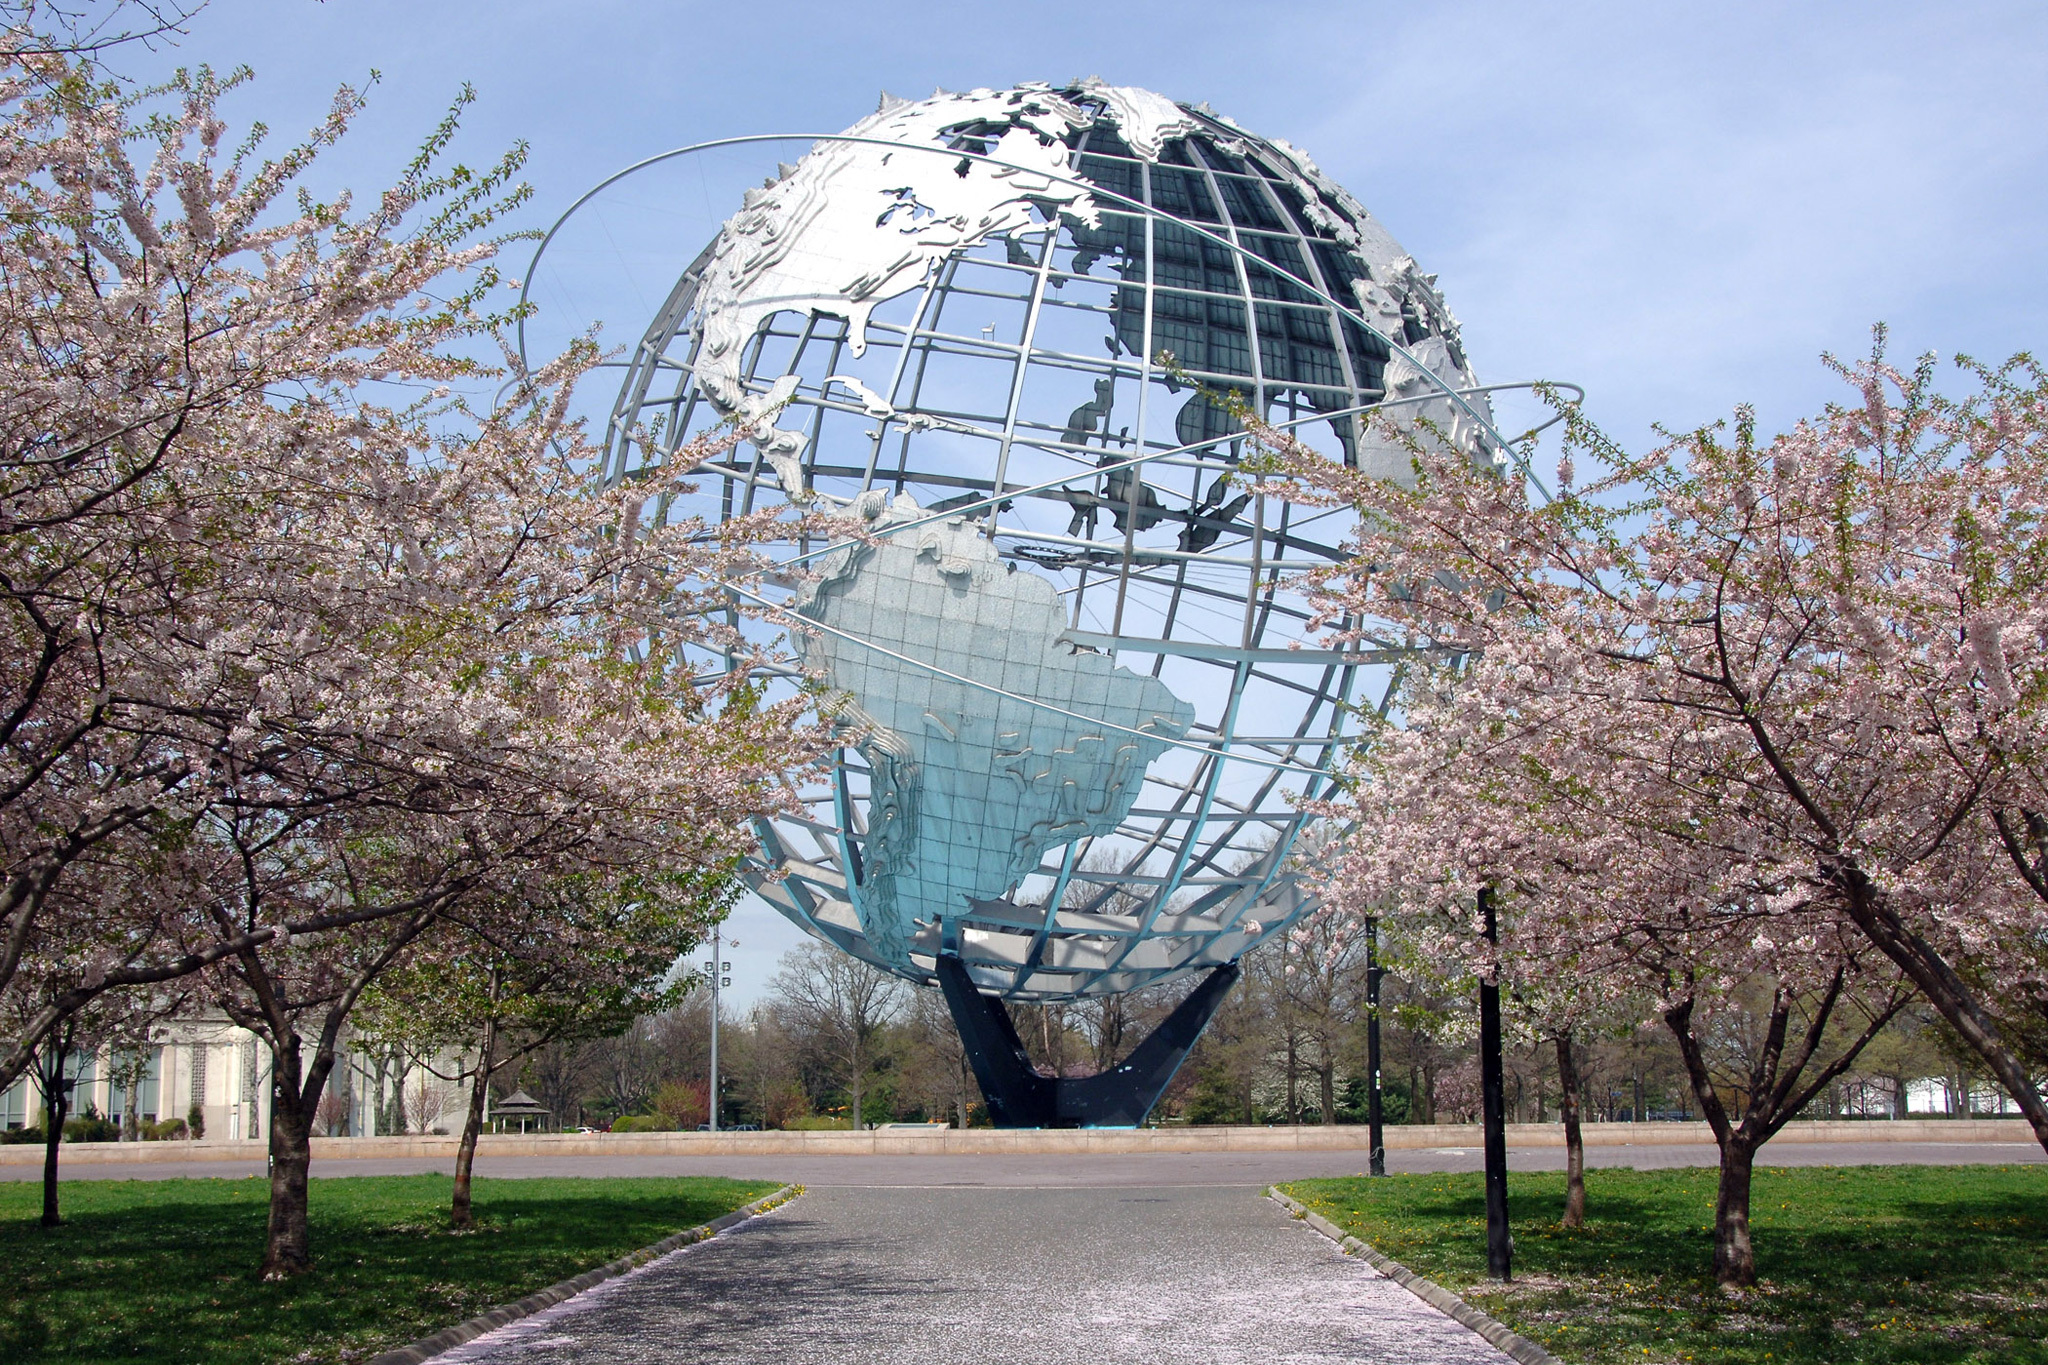 Flushing meadows corona park queens ny attractions in for Fun things for couples to do in nyc